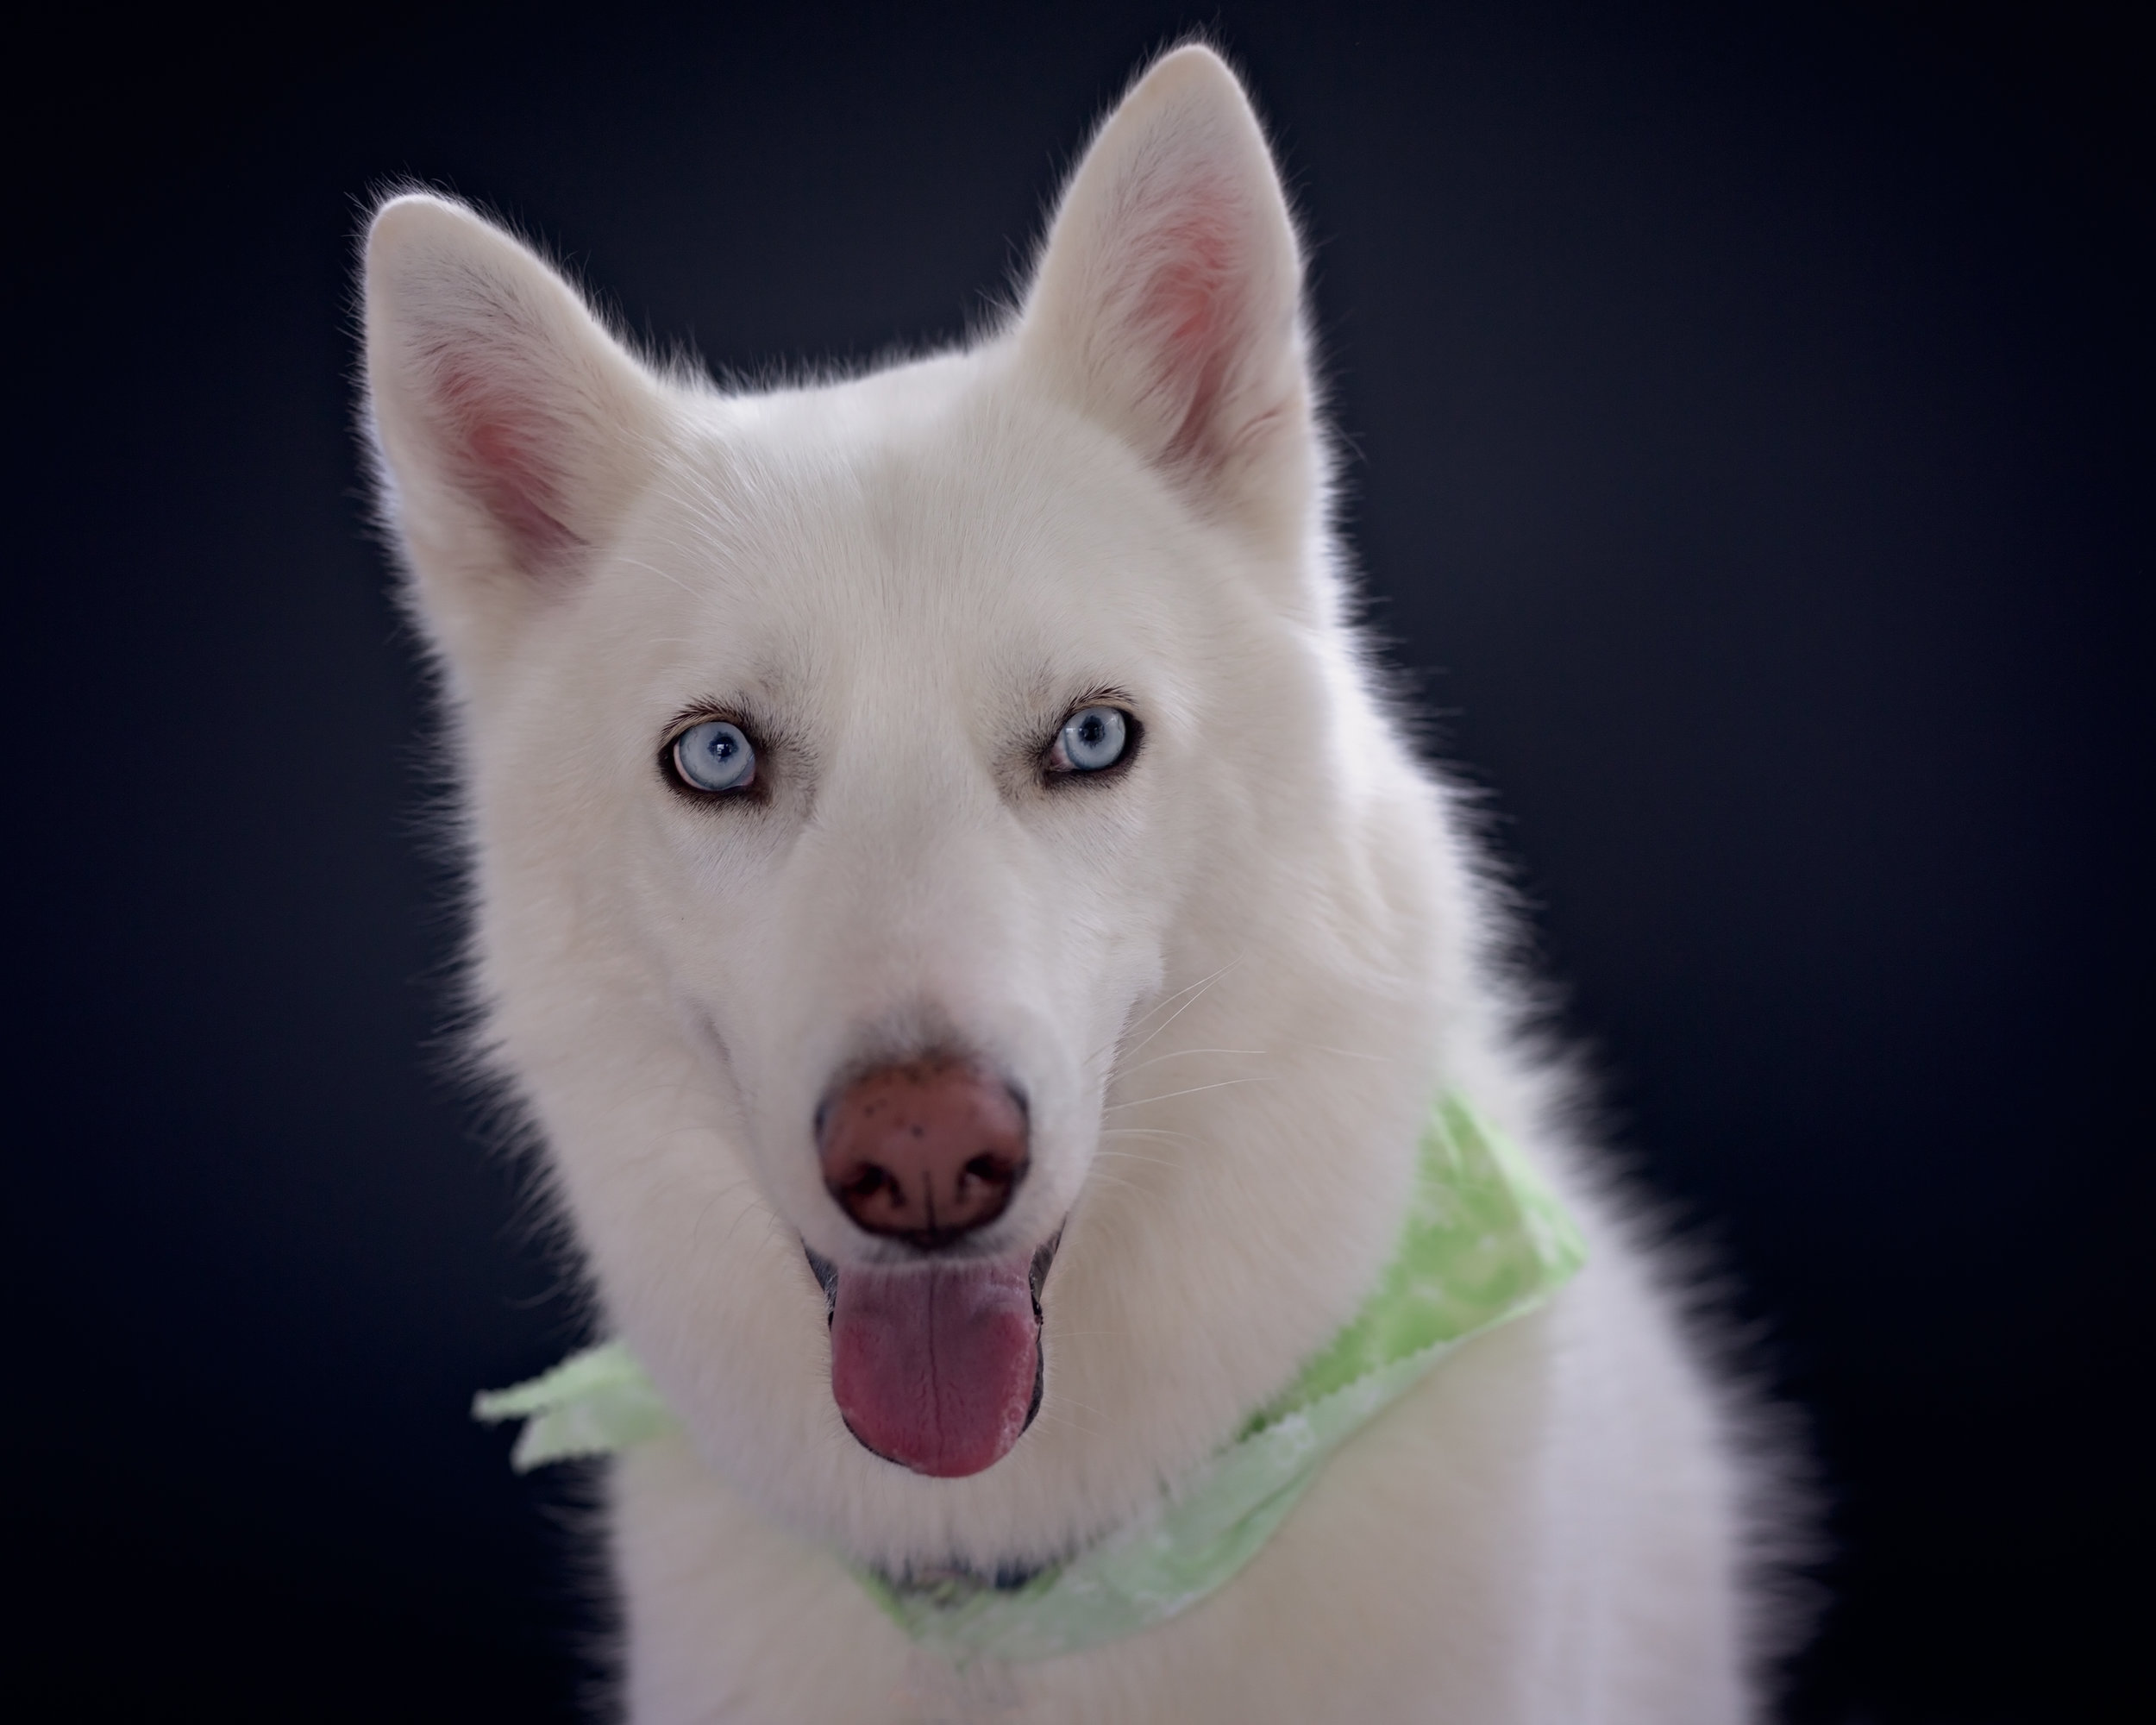 White husky- dog photo- studio style